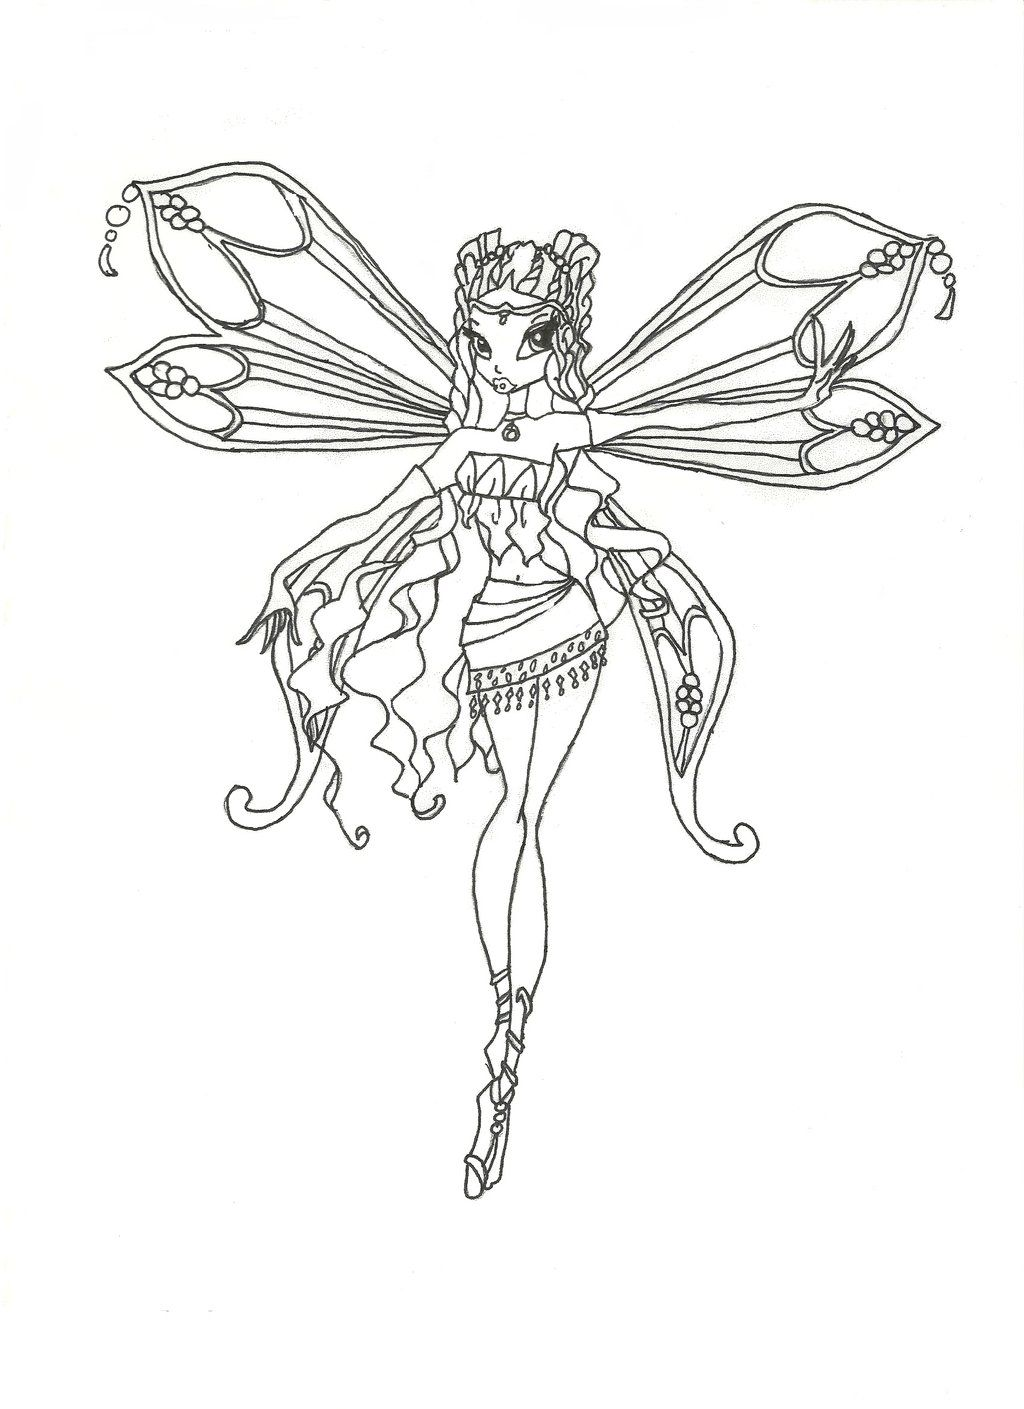 winx club enchantix layla coloring page by winxmagic237 deviantart